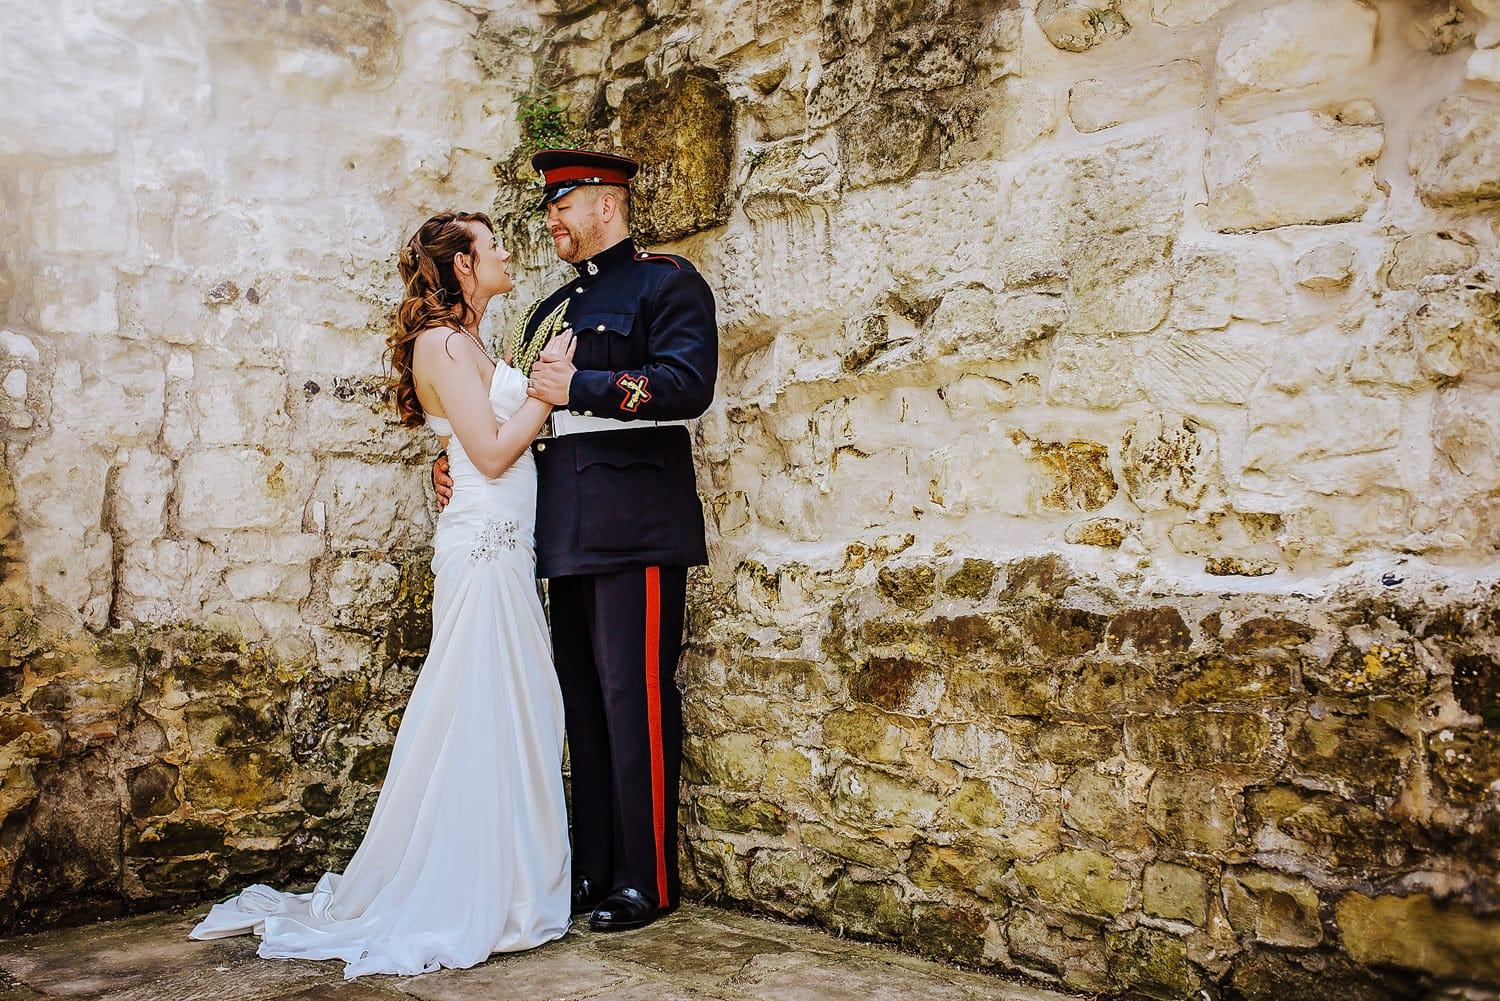 military-bride-groom.jpg